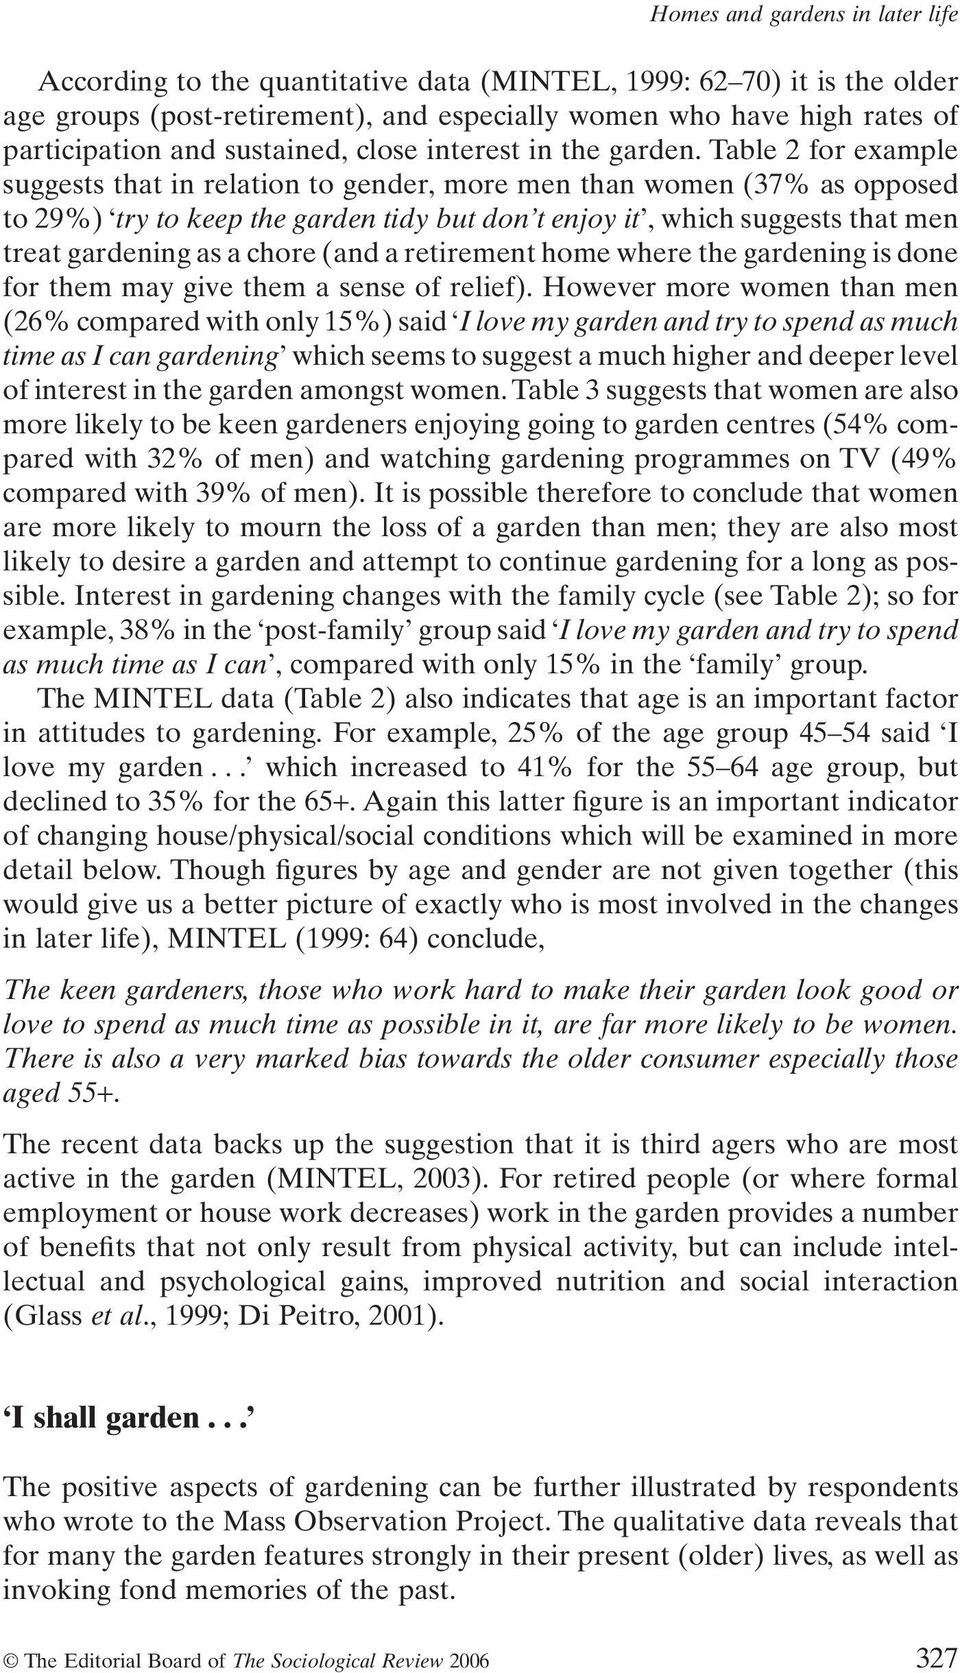 Table 2 for example suggests that in relation to gender, more men than women (37% as opposed to 29%) try to keep the garden tidy but don t enjoy it, which suggests that men treat gardening as a chore